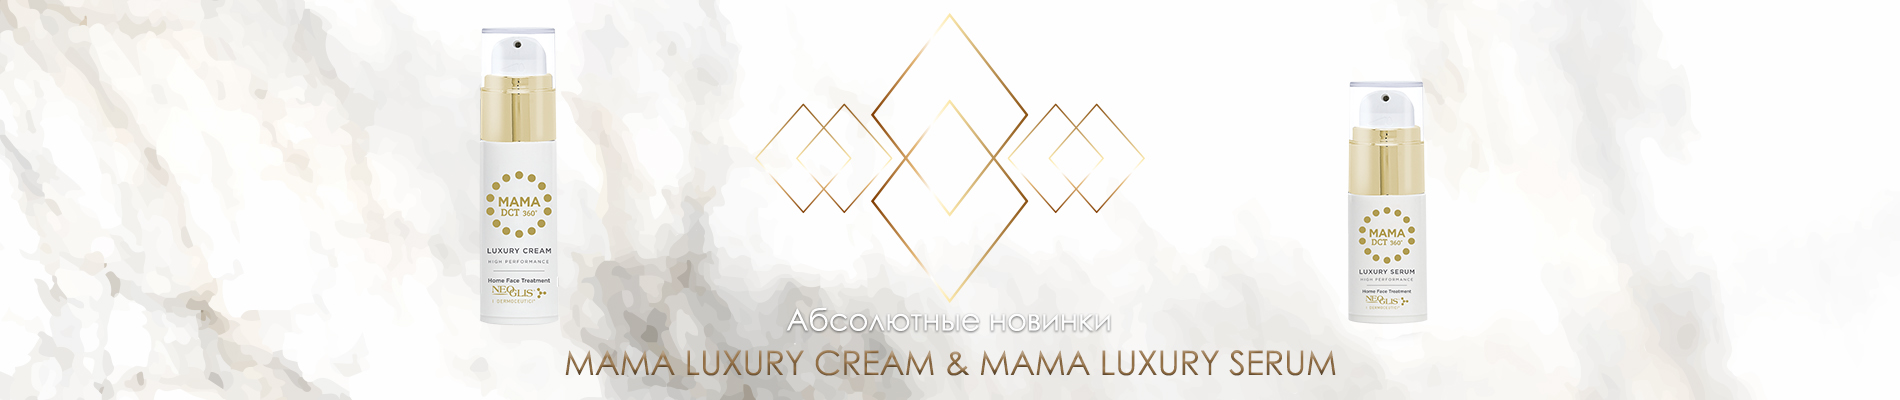 MAMA-LUXURY-CREAM-MAMA-LUXURY-SERUM